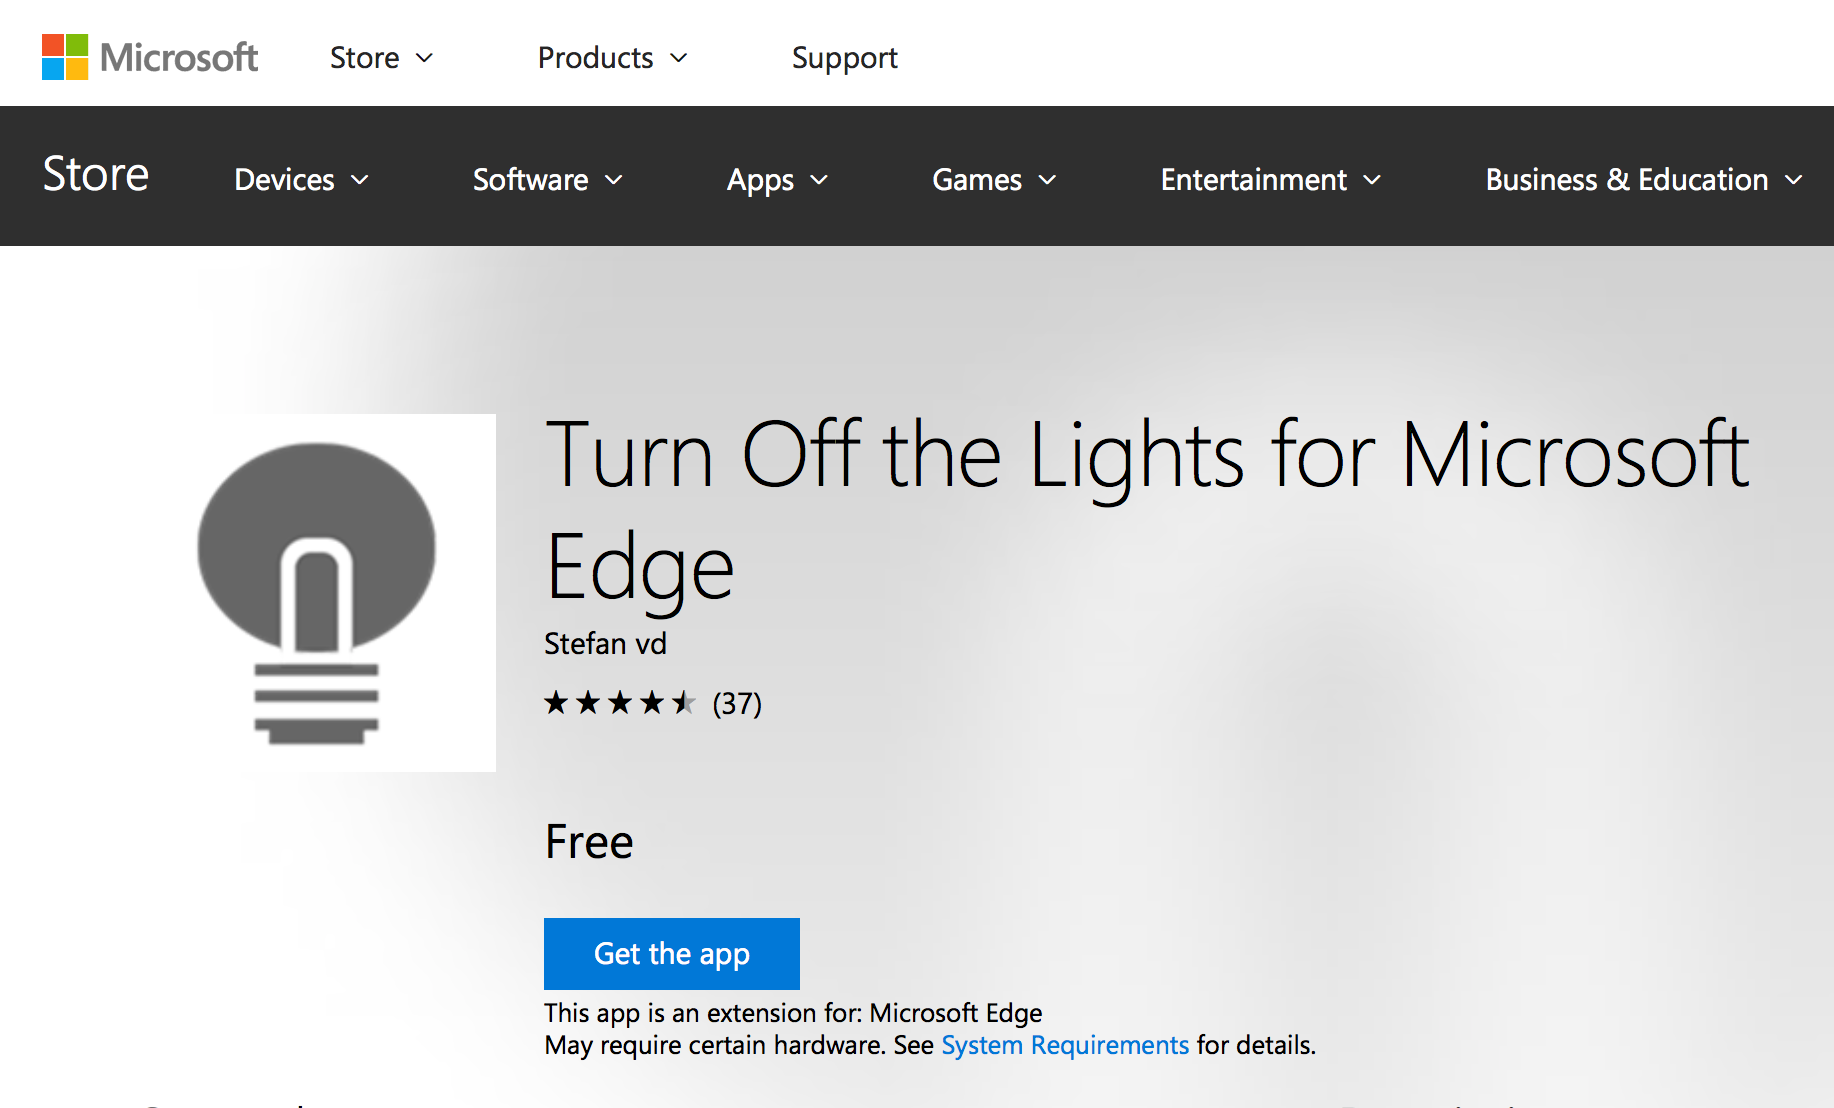 Turn Off the Lights for Microsoft Edge on the Microsoft Store